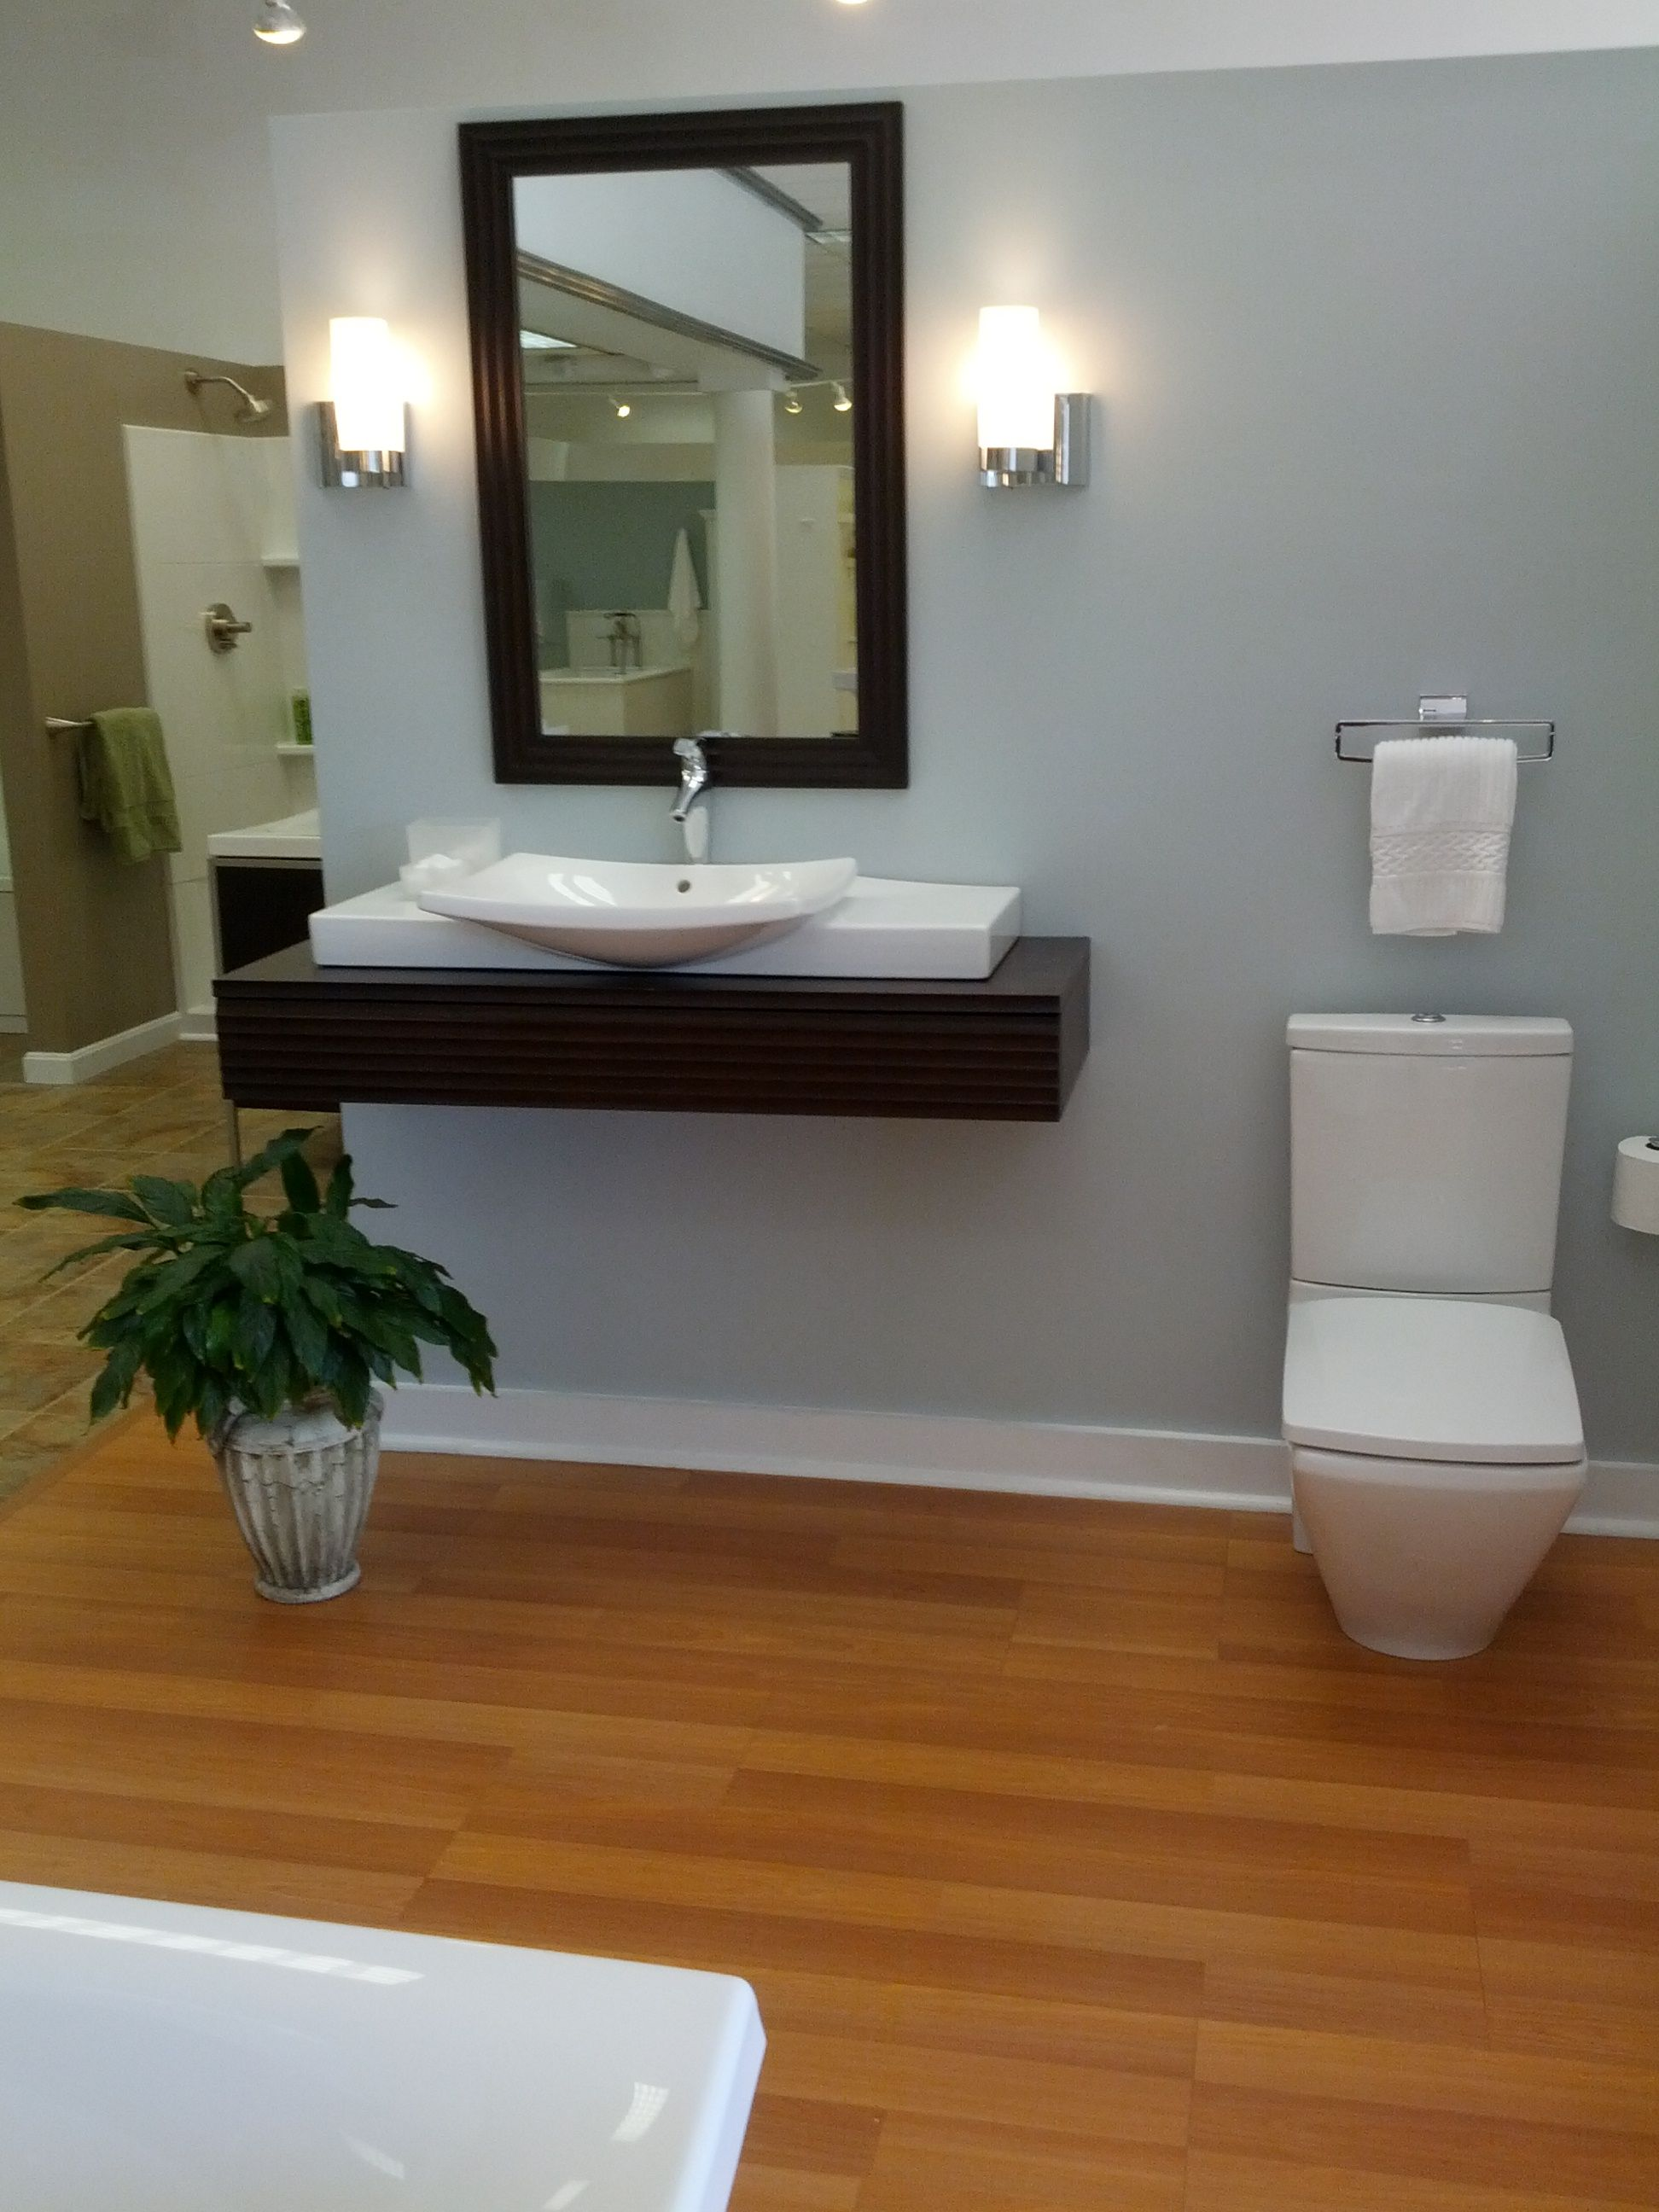 pictures of modern handicap bathrooms | for the handicap bathroom